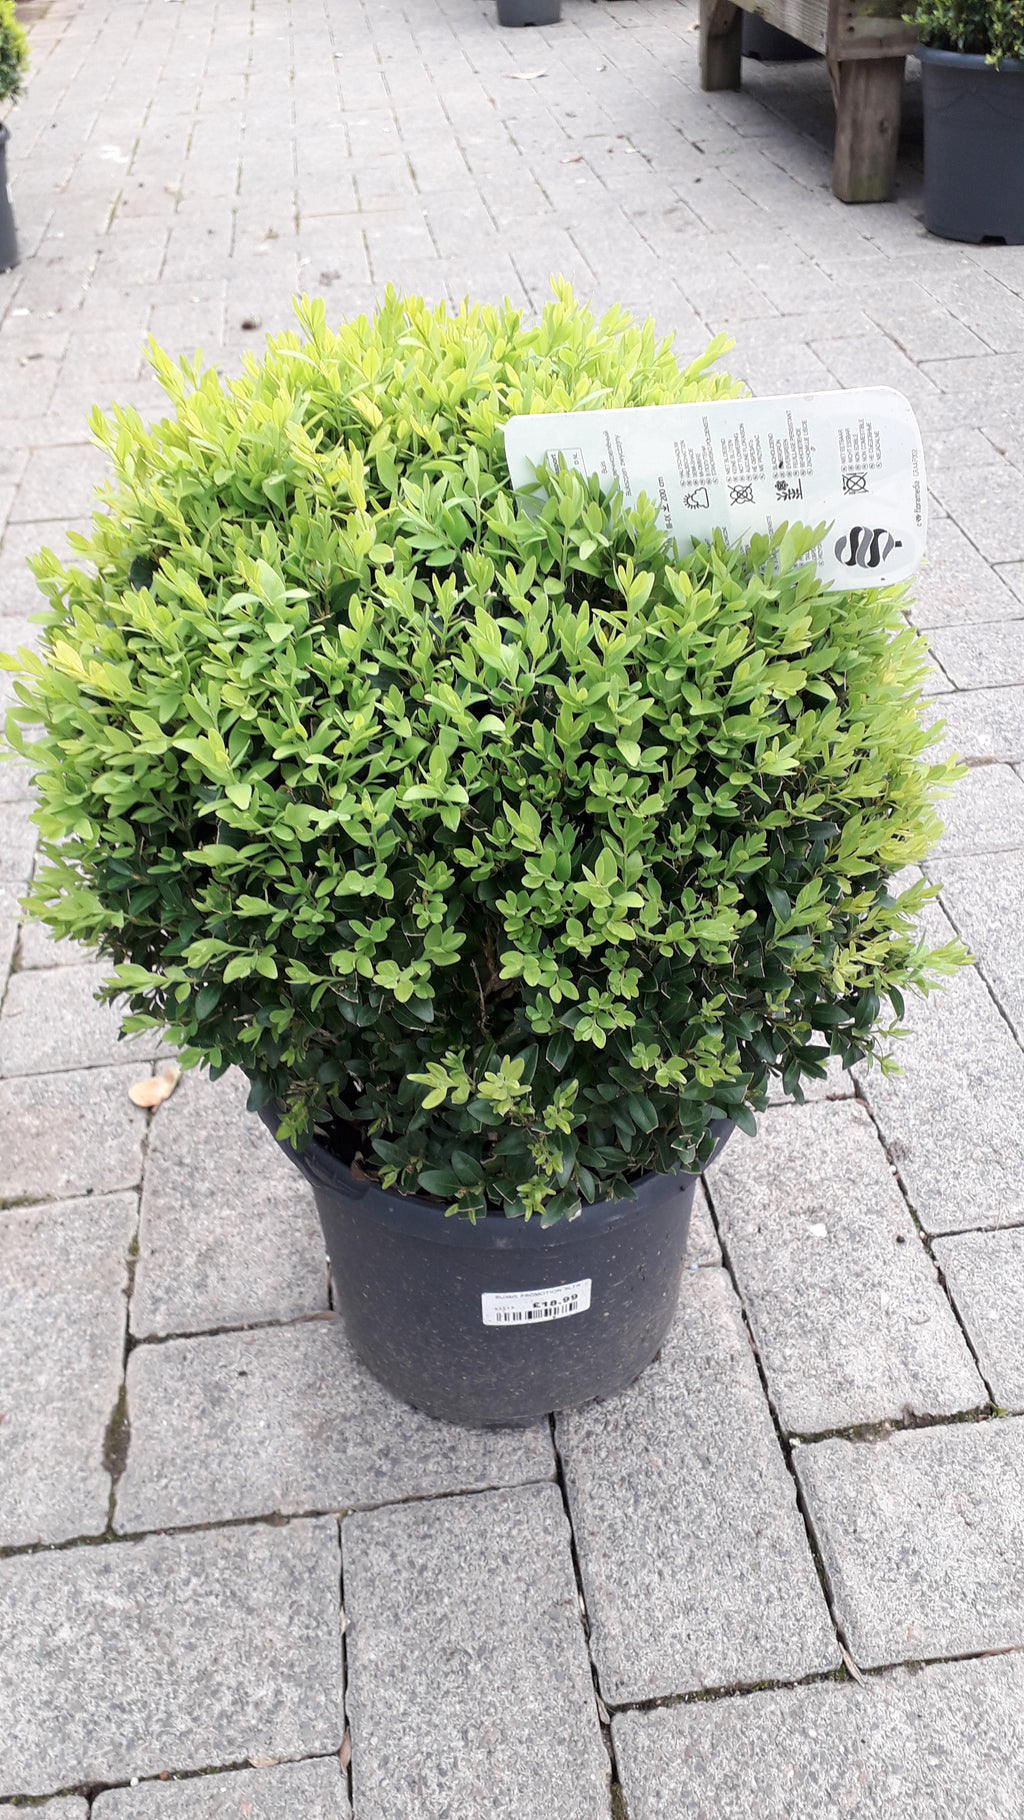 Buxus Sempervirens Ball - 20cm Box Hedge Topary Ball